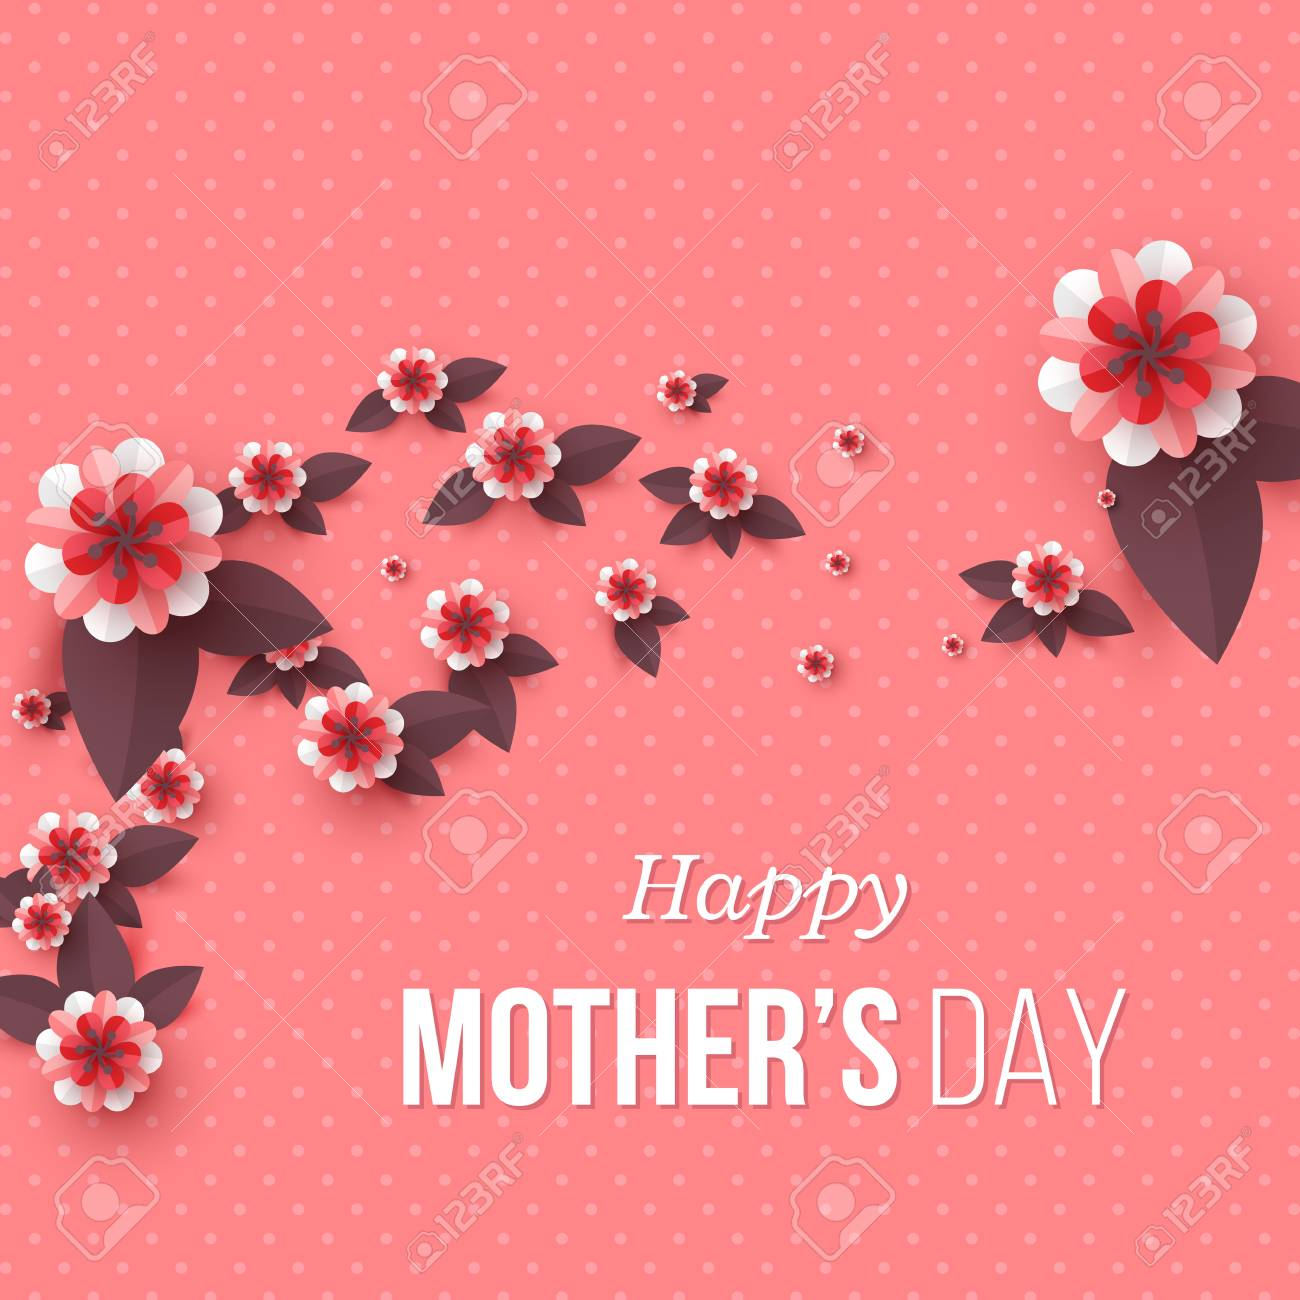 Happy Mother's day greeting card. Paper cut flowers, holiday background. Vector illustration. - 95815471